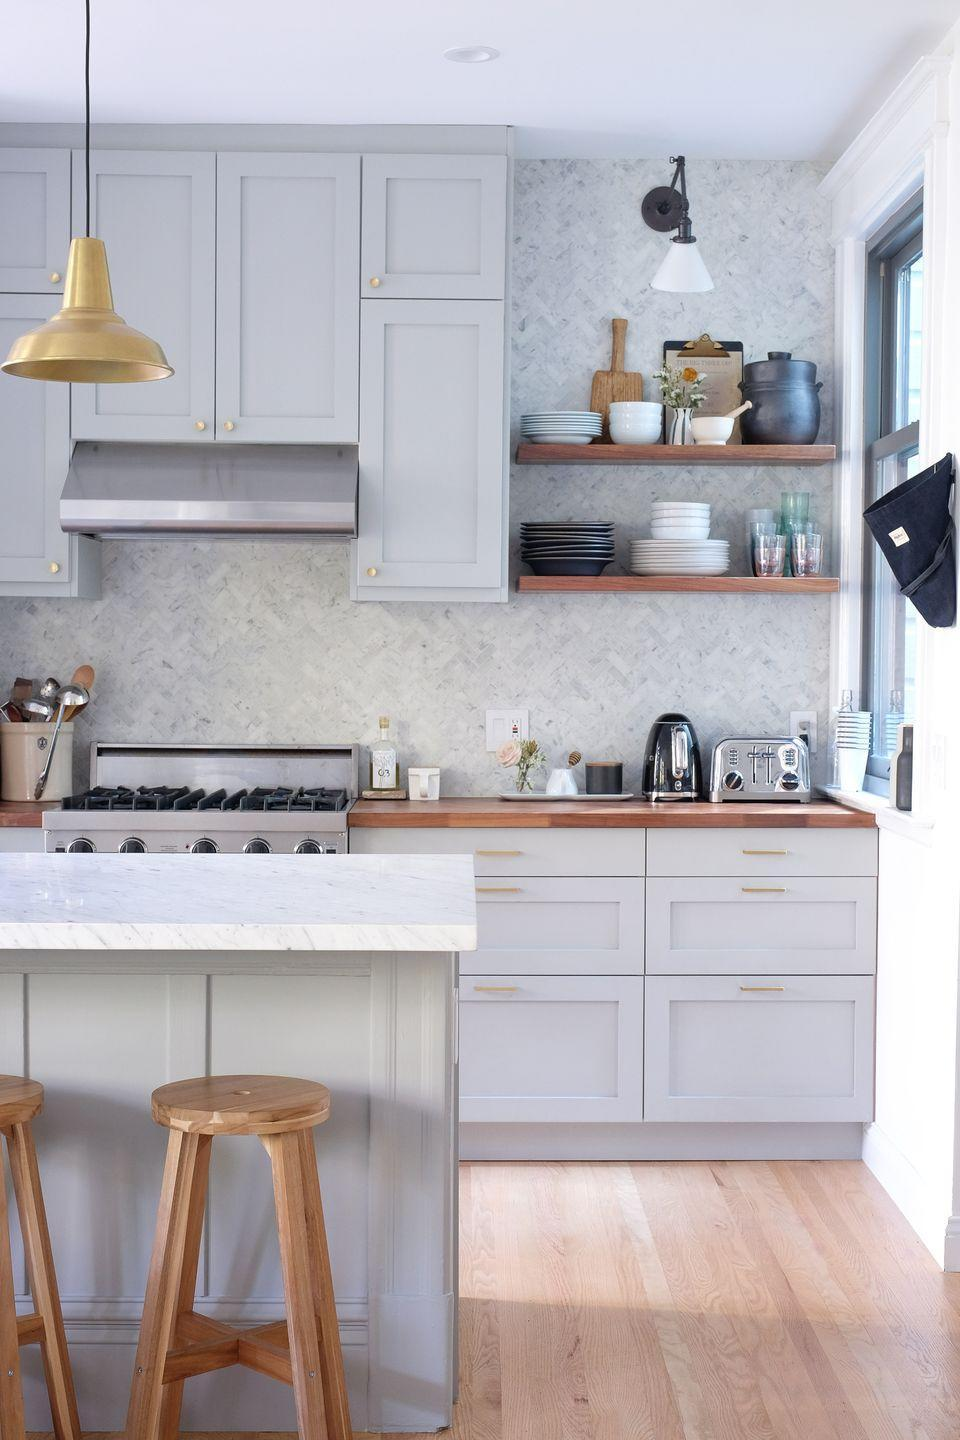 "<p>A warm gray cabinetry color, brass pendants, and multicolor tile on the backsplash of this IKEA kitchen by <a href=""https://ginarachelledesign.com/"" rel=""nofollow noopener"" target=""_blank"" data-ylk=""slk:Gina Rachelle Design"" class=""link rapid-noclick-resp"">Gina Rachelle Design</a> give it a feeling of timelessness. </p>"